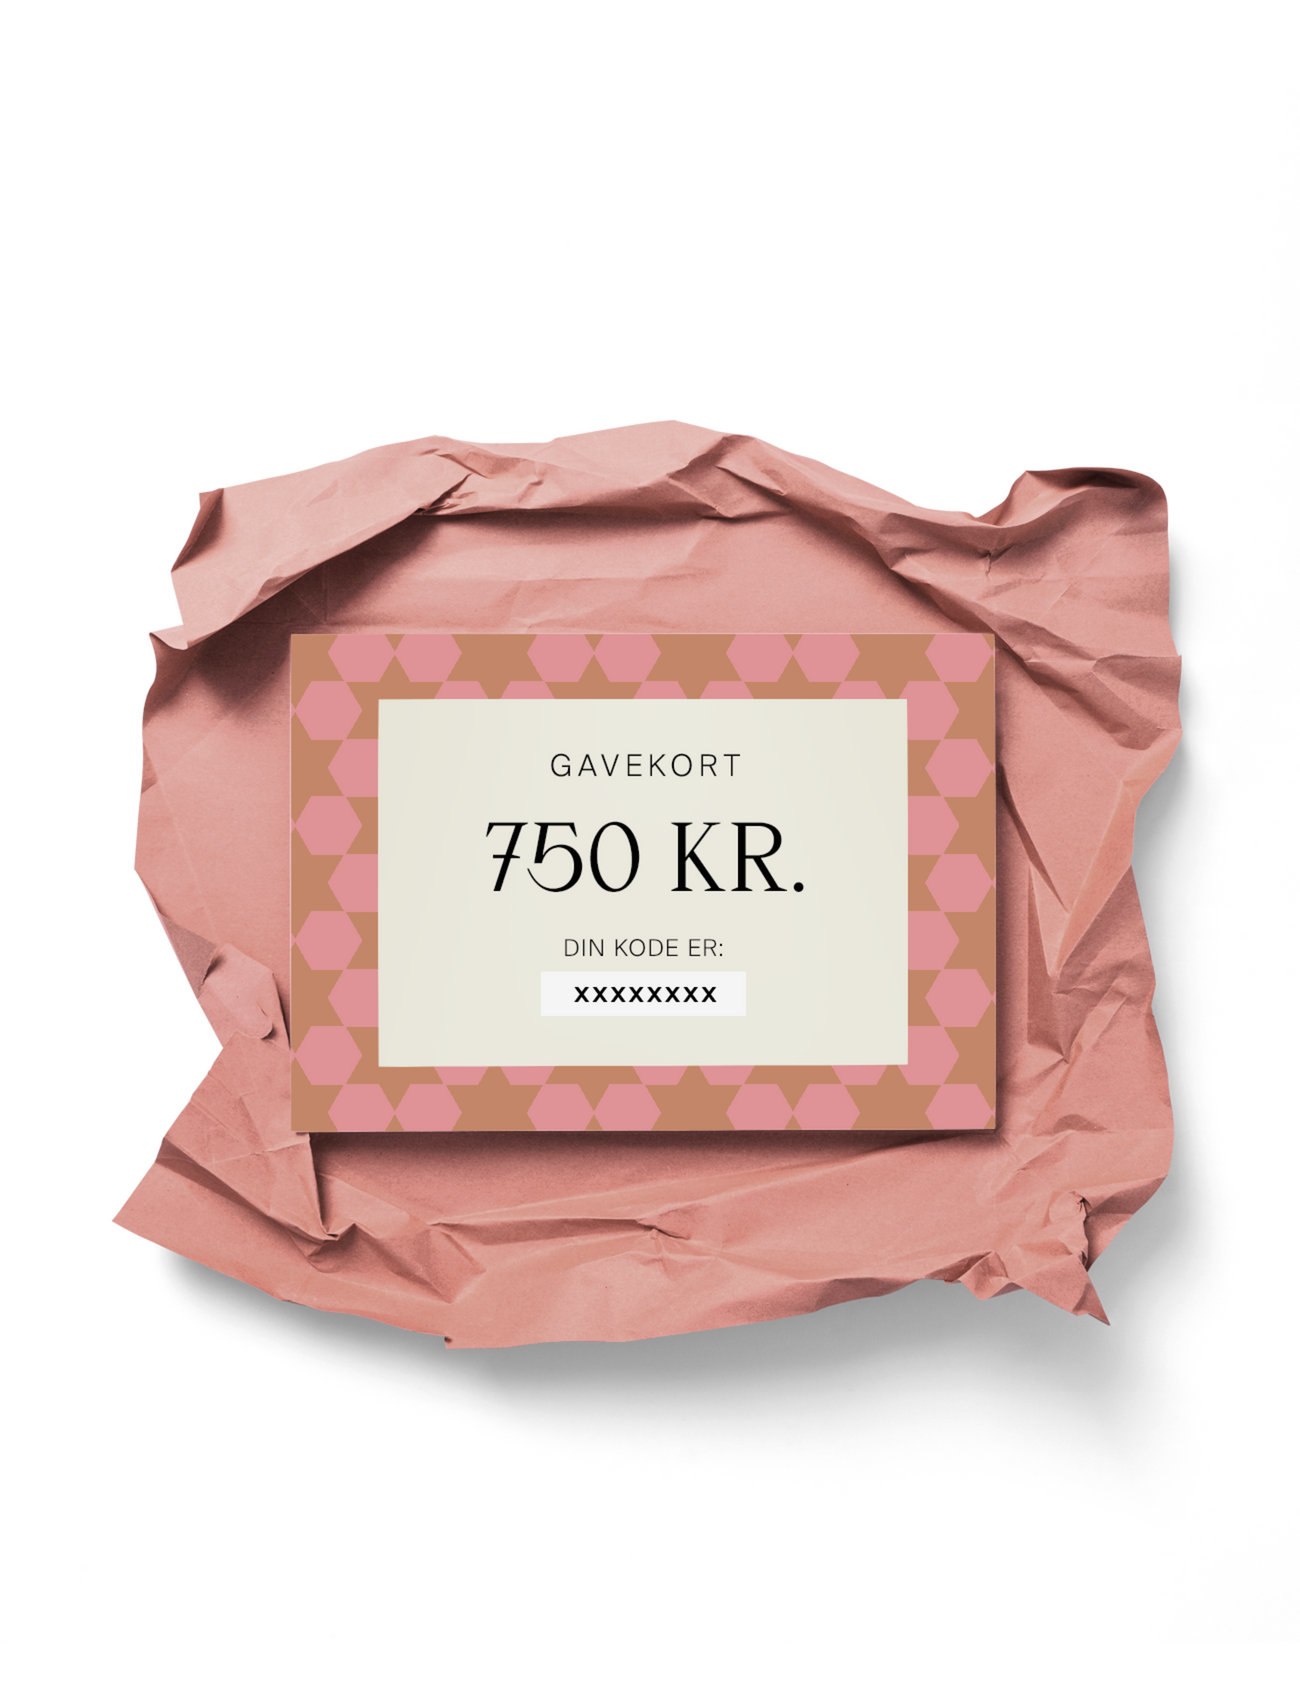 Boozt Gift - Gift card - gift cards - dkk 750 - 0